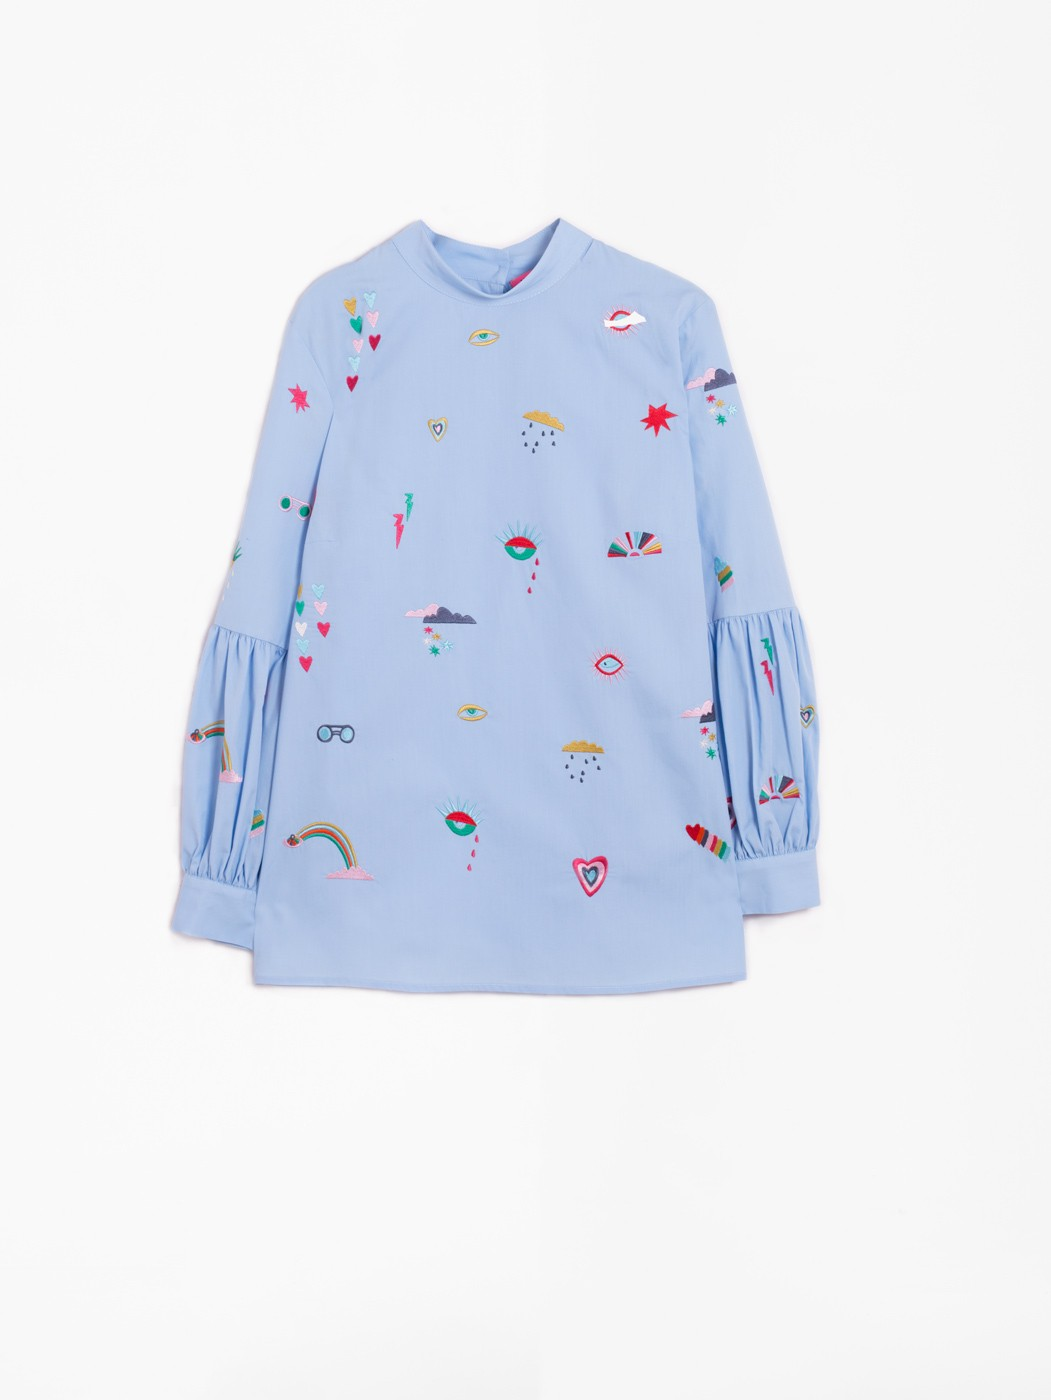 LOLA EMBROIDERY SHIRT BLUE POPPLIN